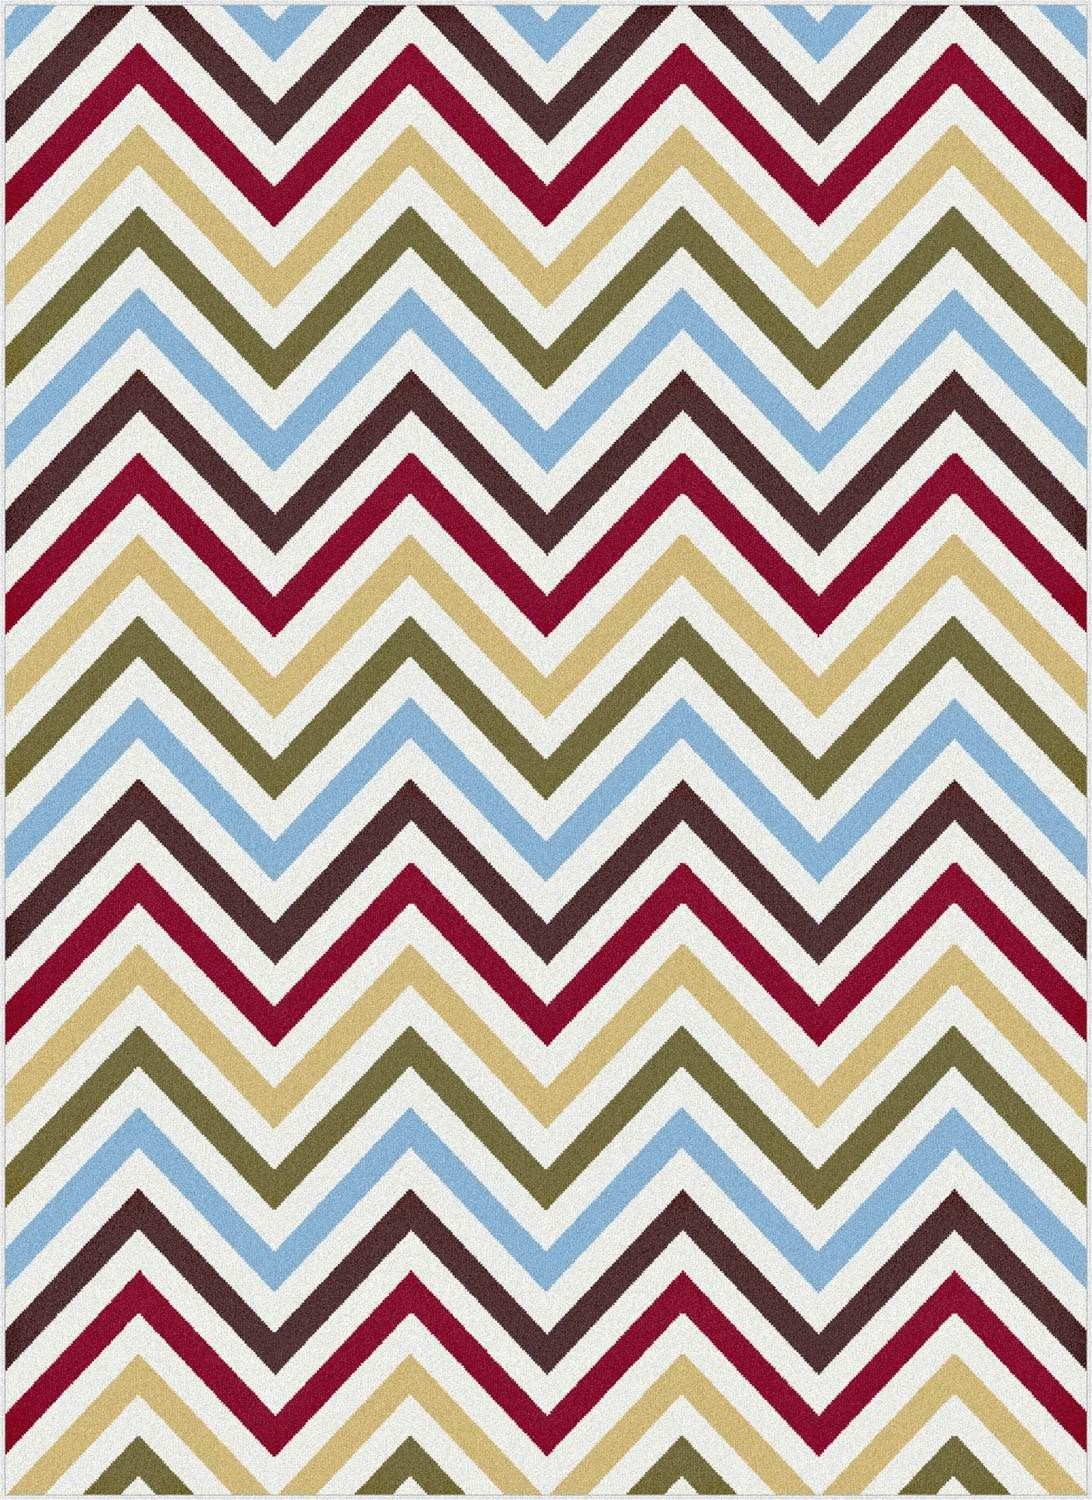 Tayse Rugs Metro Collection 1015 Multi Red Chevron Rug Superarearugs Modern Zigzag Trendy Pinterest